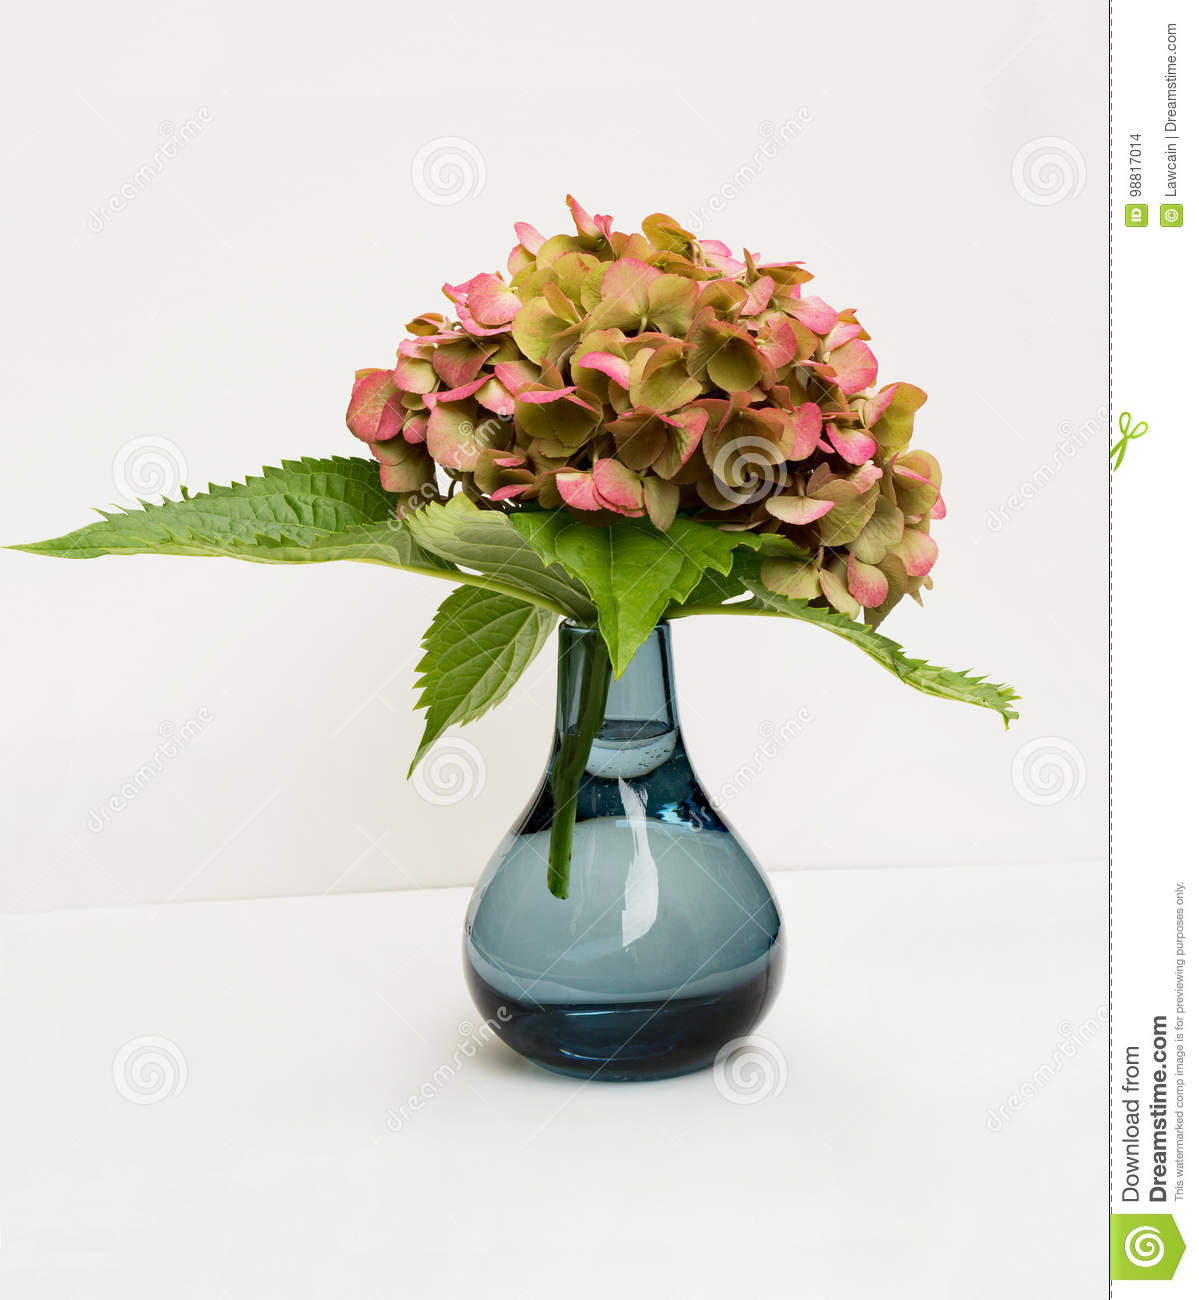 White Hydrangea Arrangement In Glass Vase Of Hydrangea In Blue Vase Stock Photo Image Of Blooming 98817014 Inside Large Pink and Green Hydrangea Blossom In Blue Vase On White Background